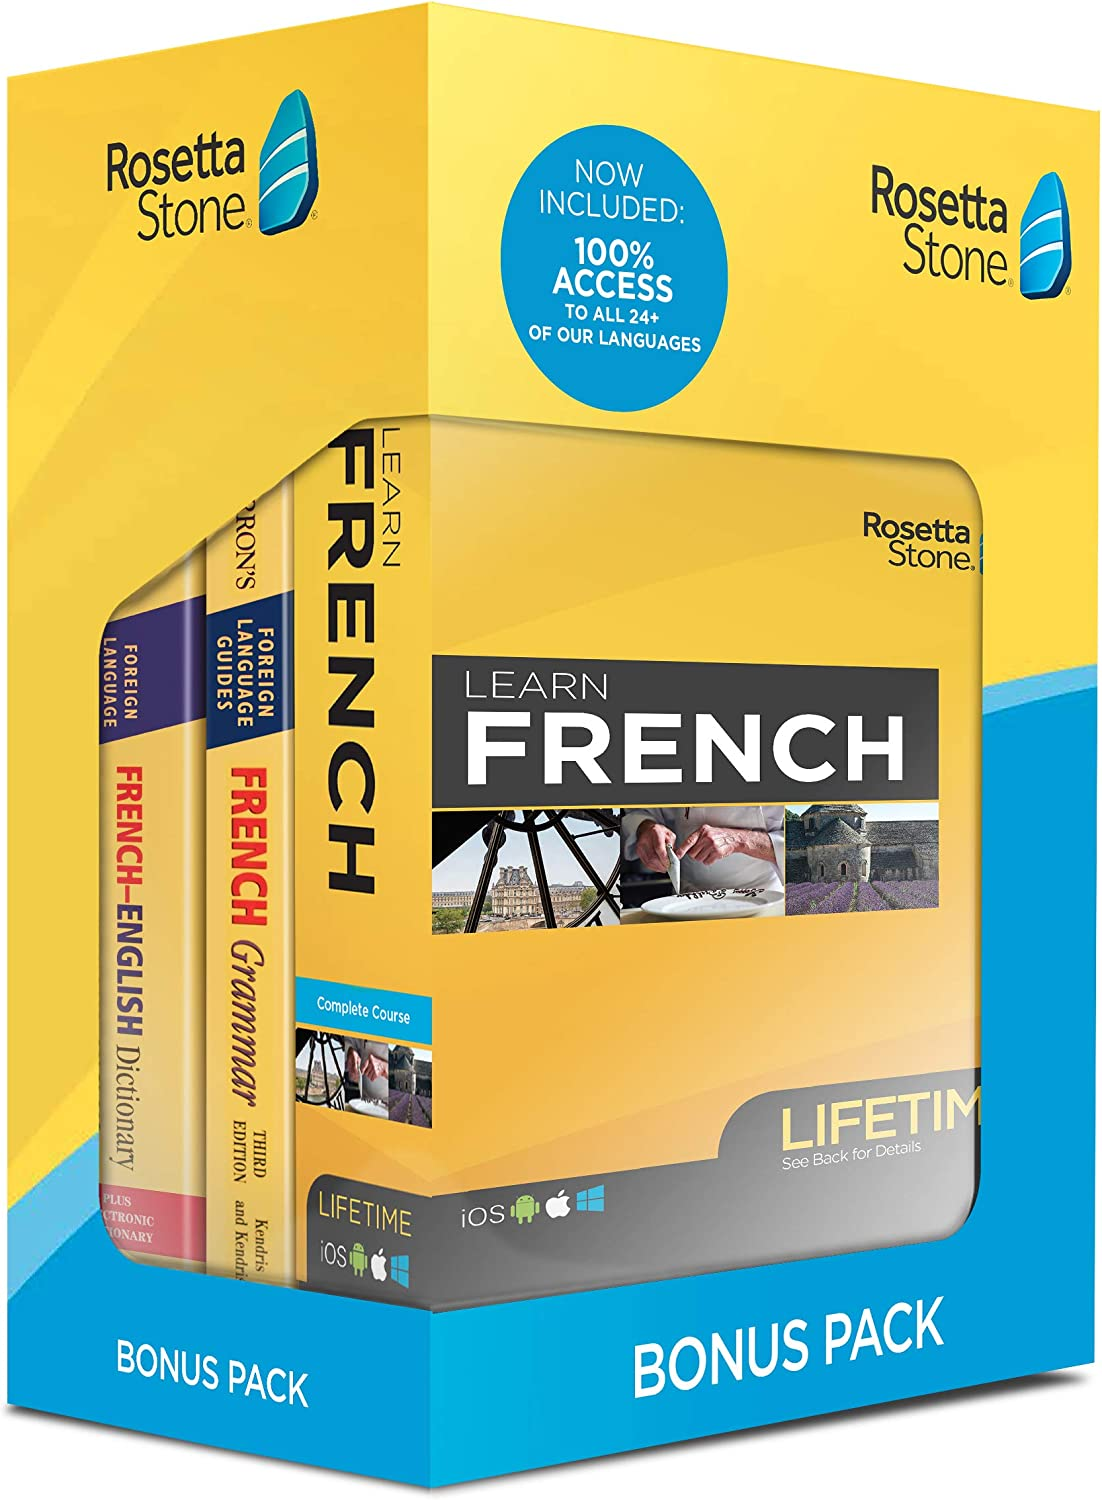 Rosetta Stone French Discount Coupon Code